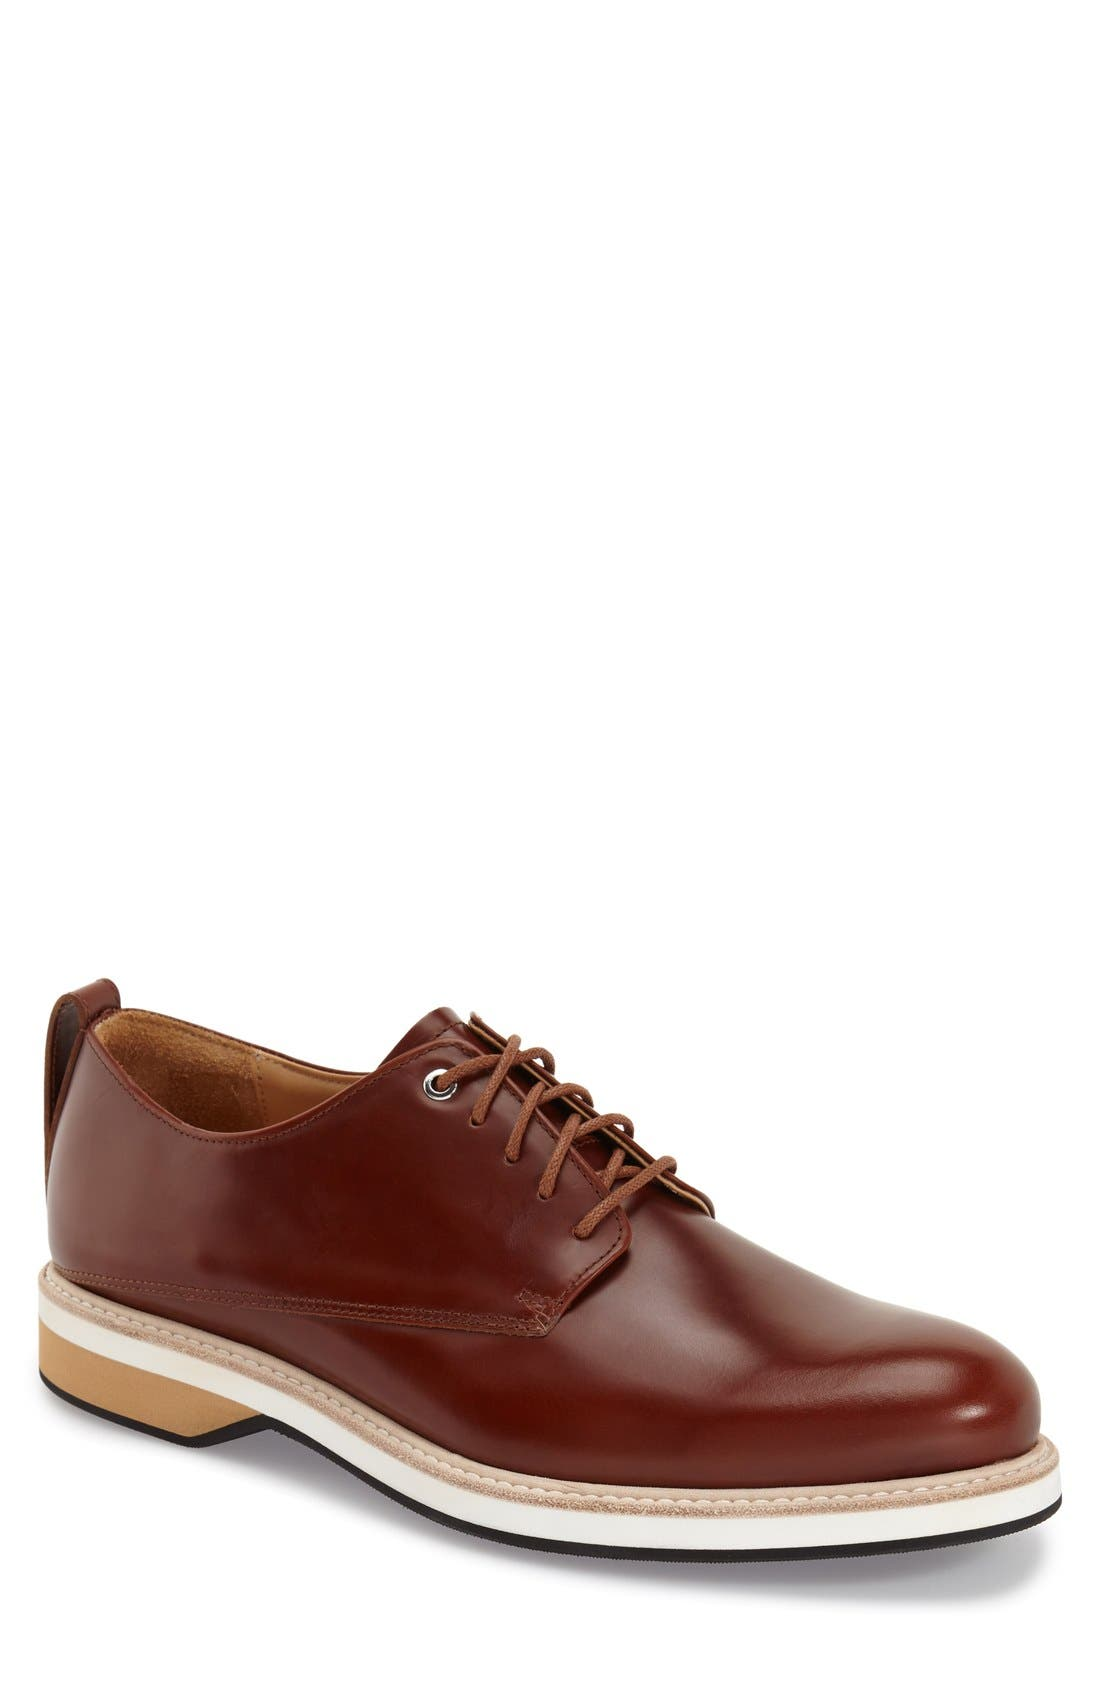 'Montoro' Derby,                         Main,                         color, Cognac Leather